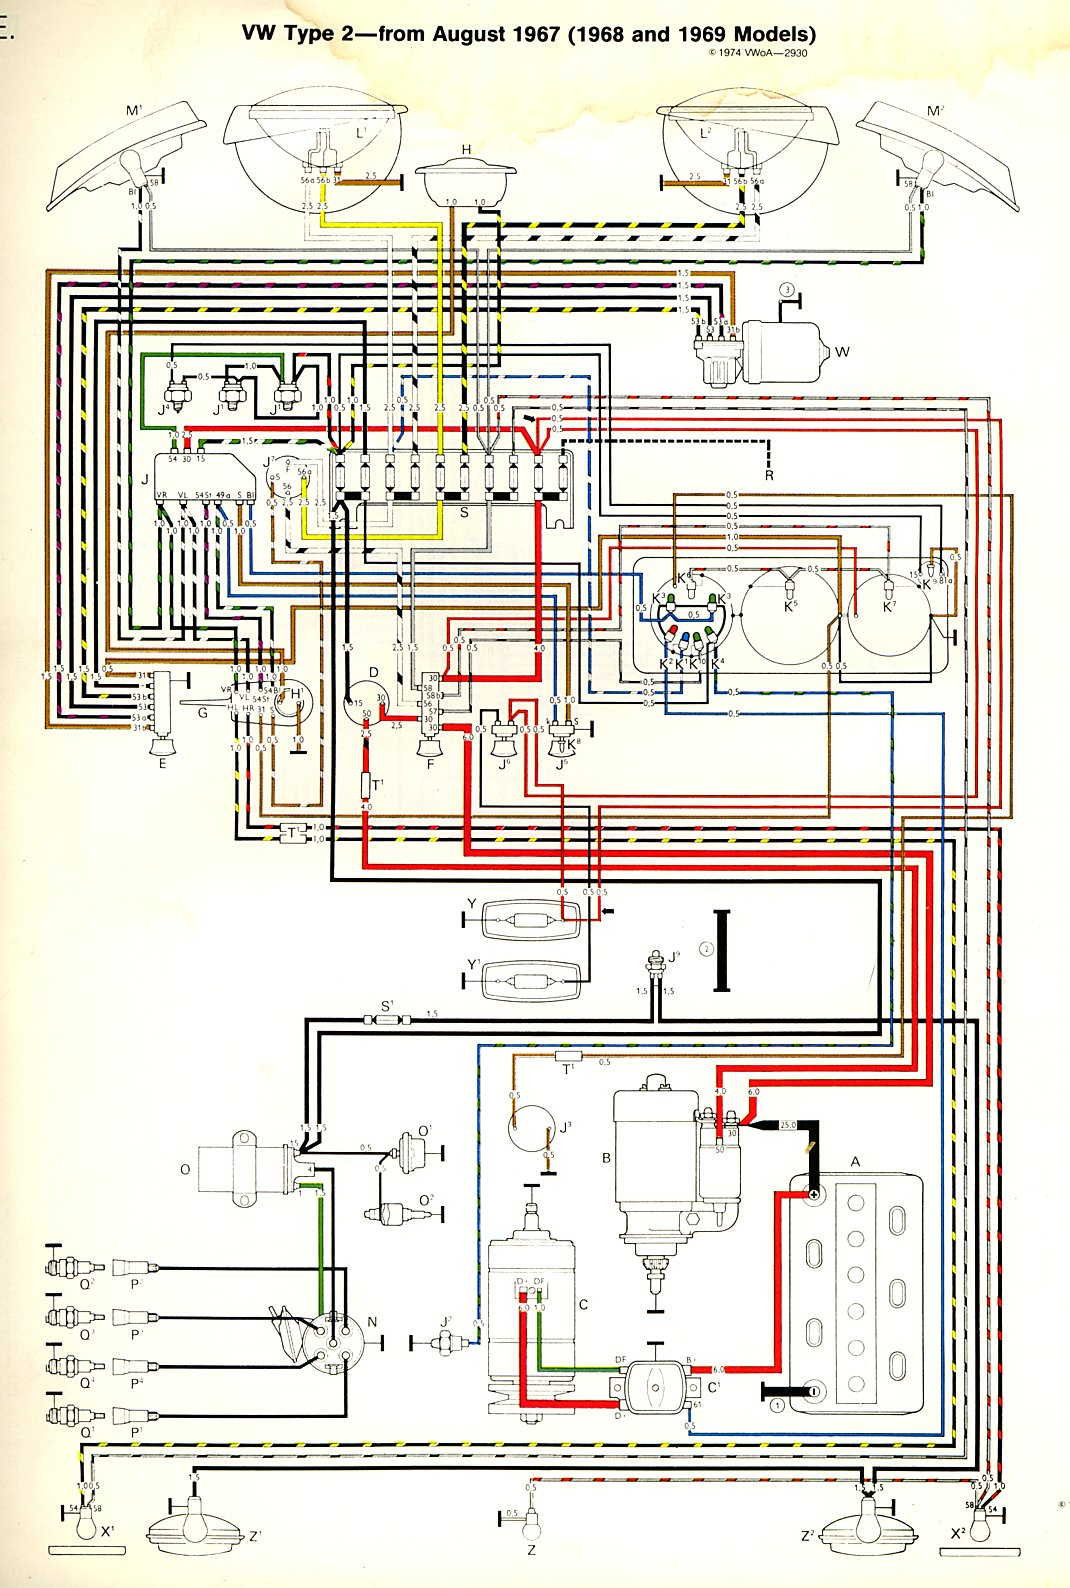 1968 69 bus wiring diagram thegoldenbug com rh thegoldenbug com Home Electrical Wiring Diagrams vw t4 wiring colours